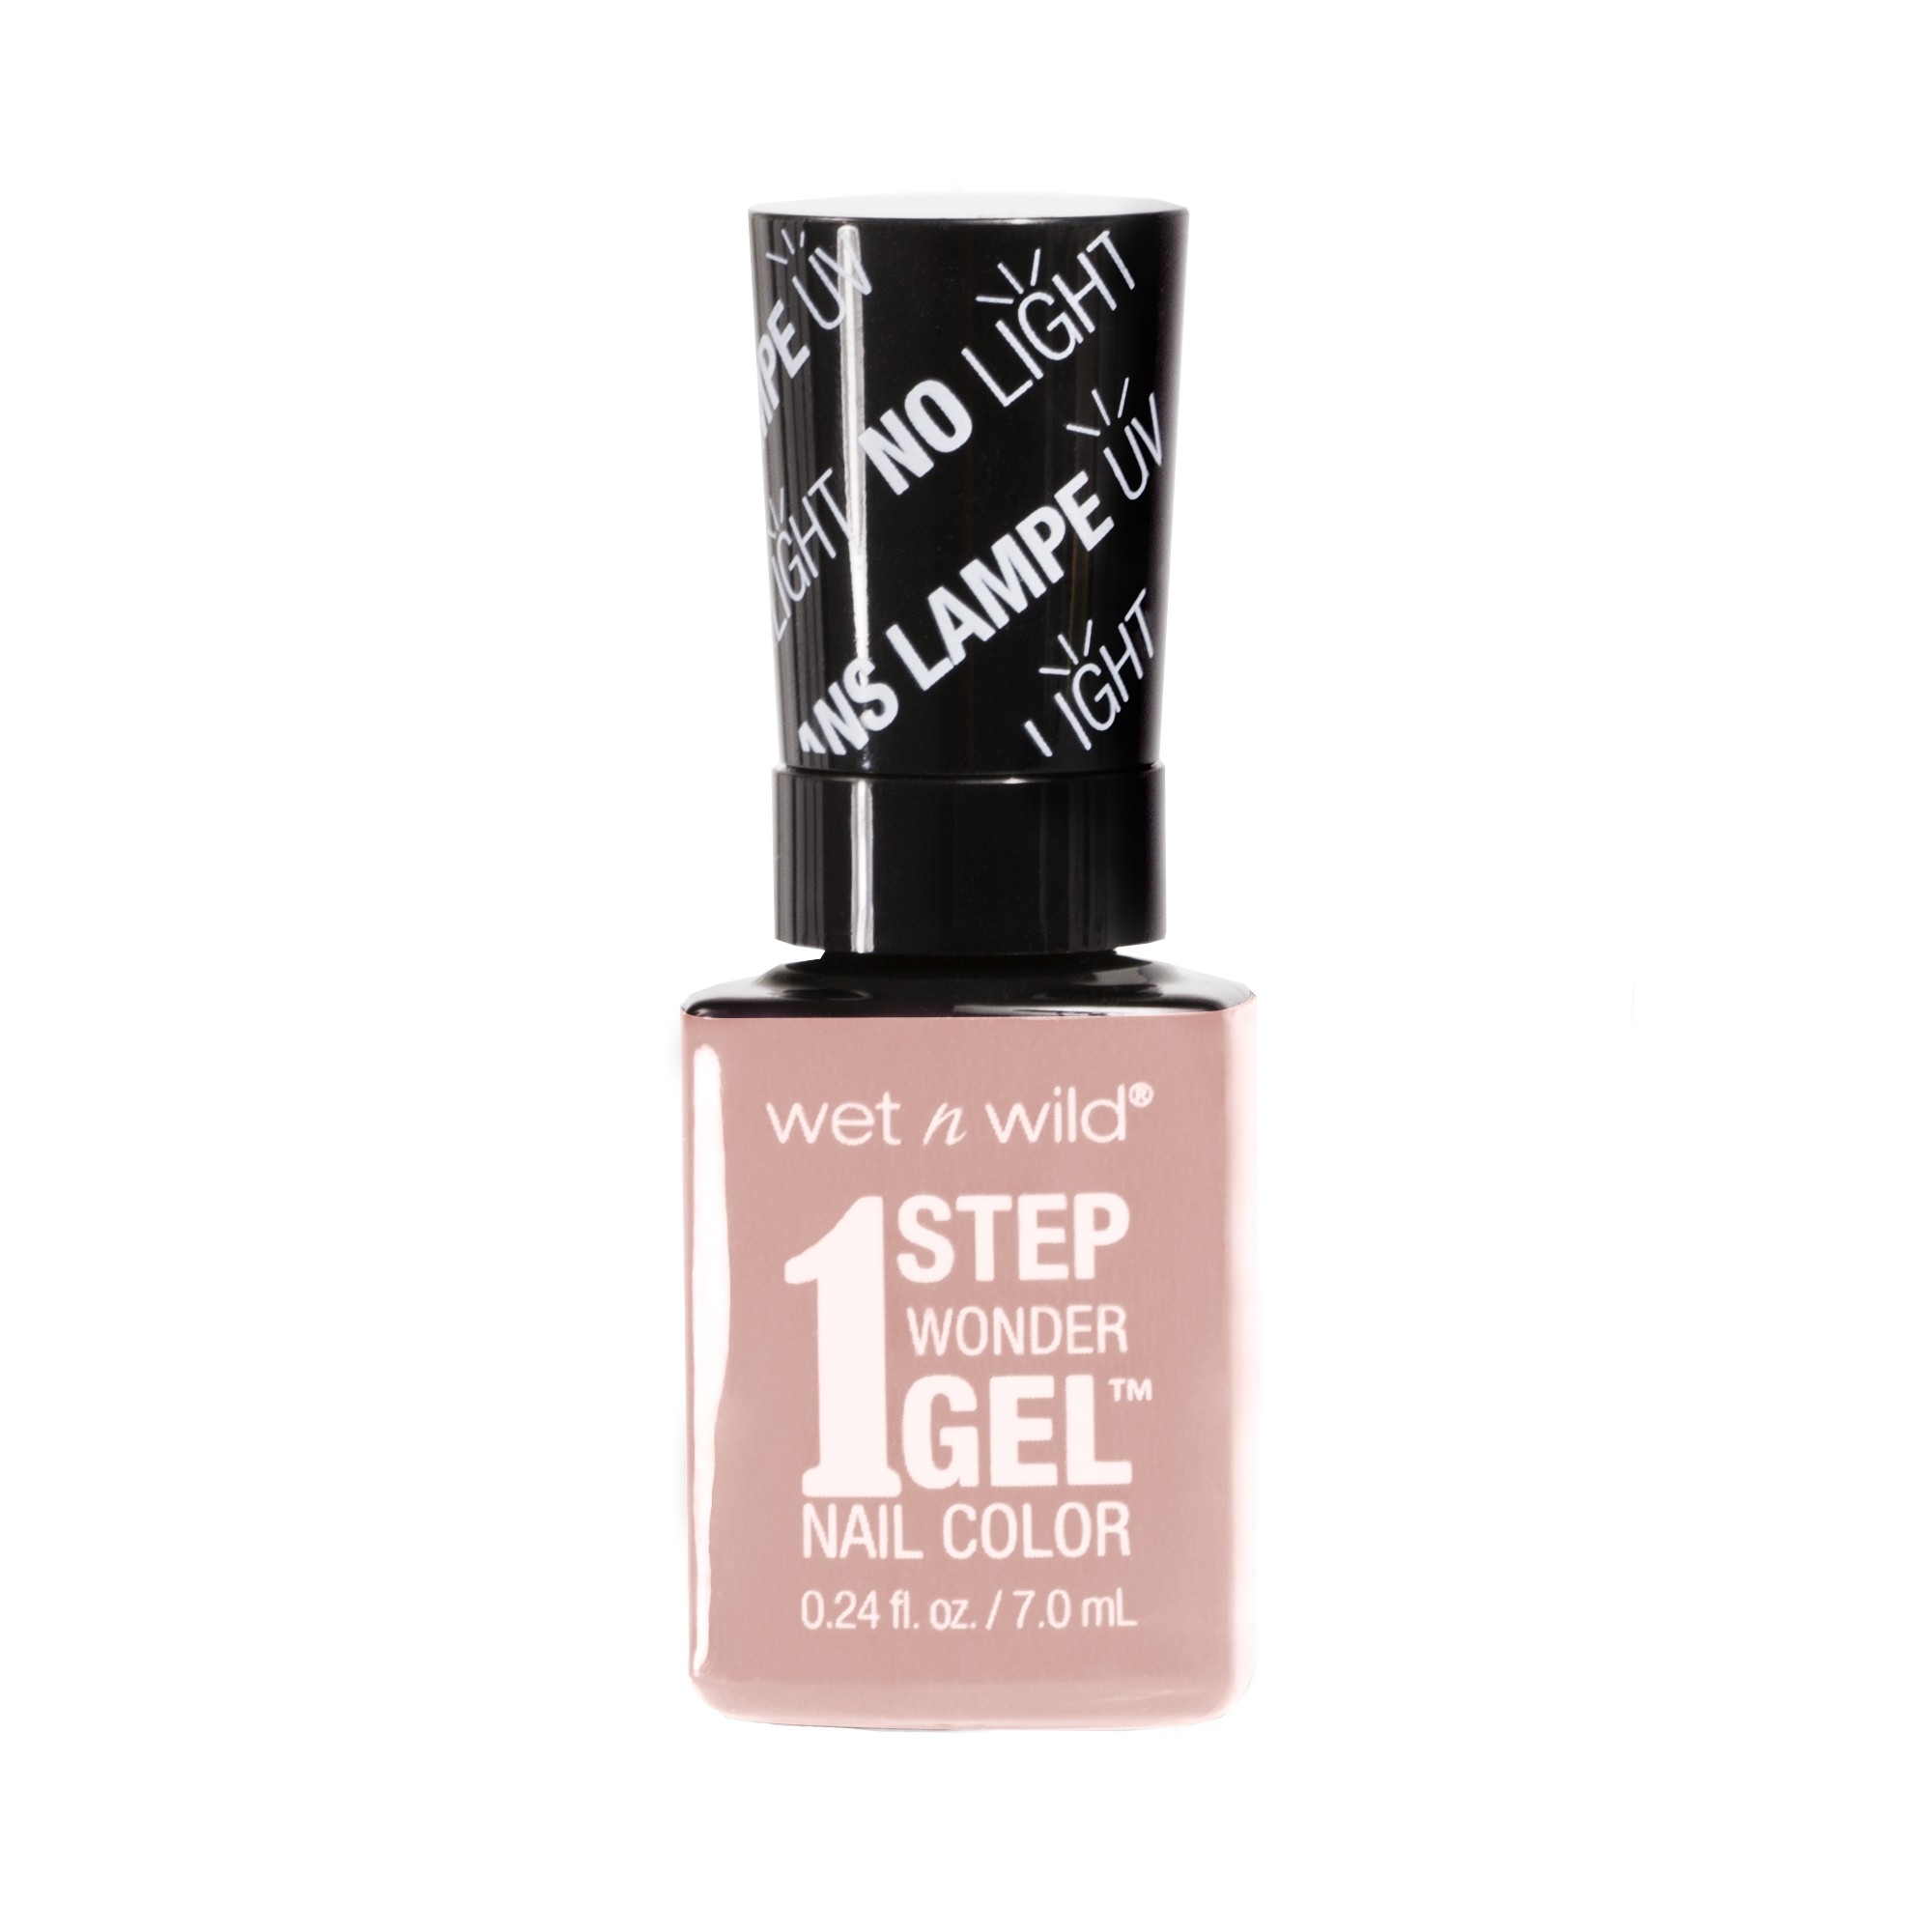 wet n wild Gel-Nagellack - 1 Step WonderGel Nail Color | beautyPALAST.ch